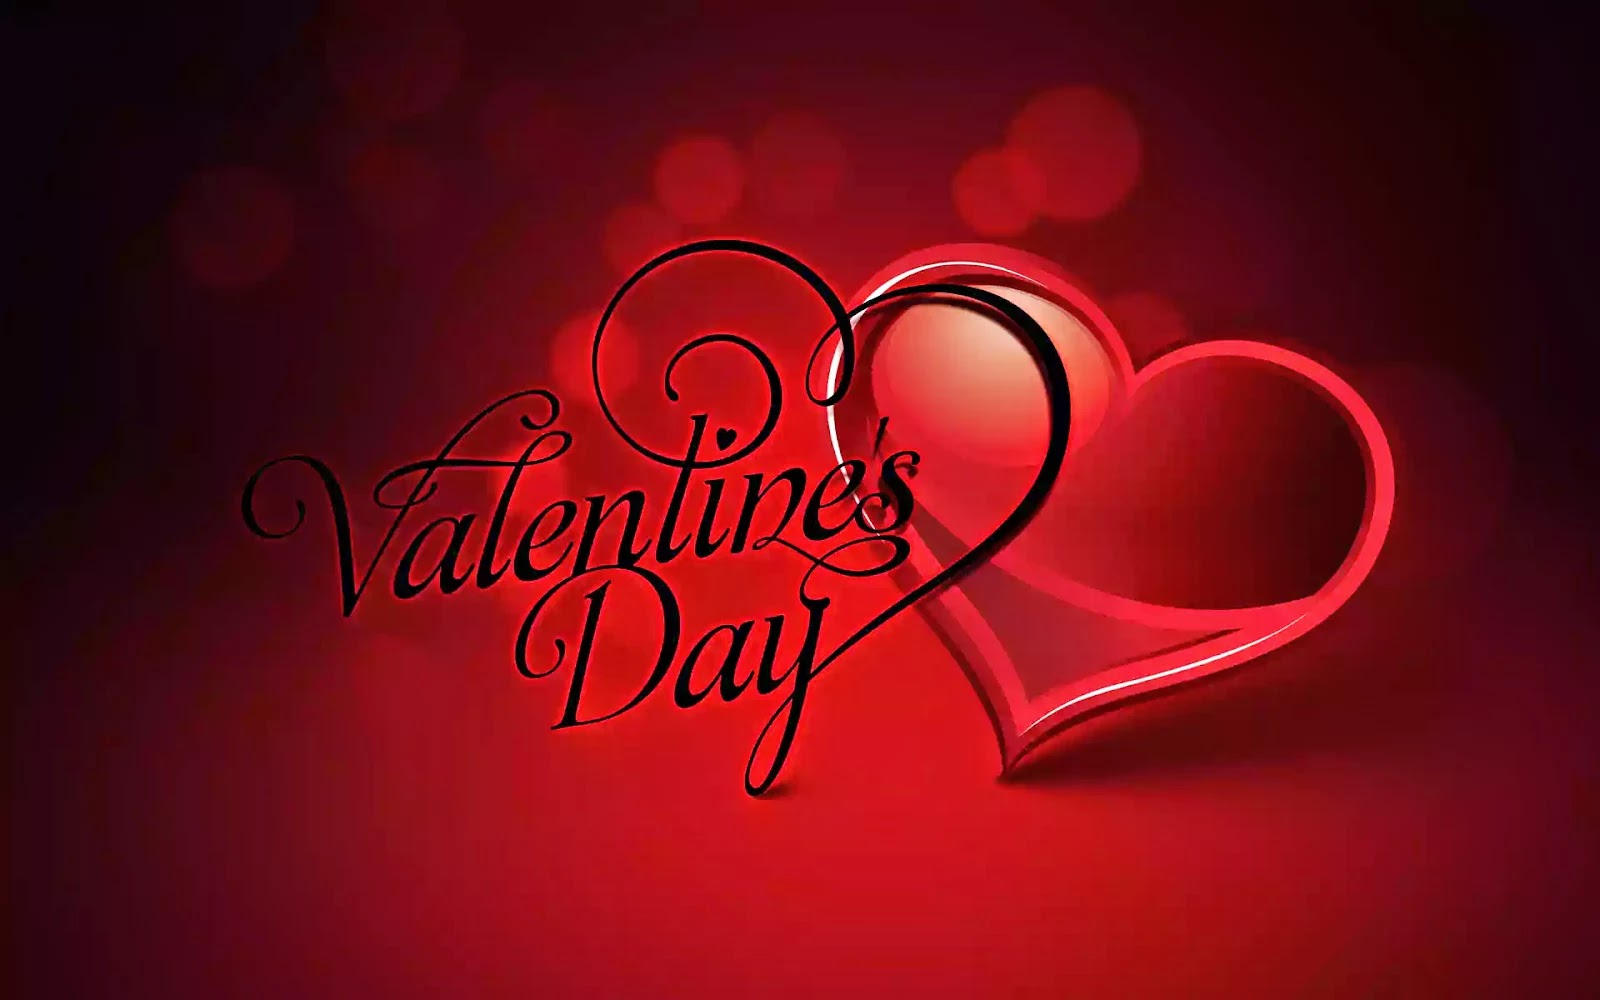 rose day propose day